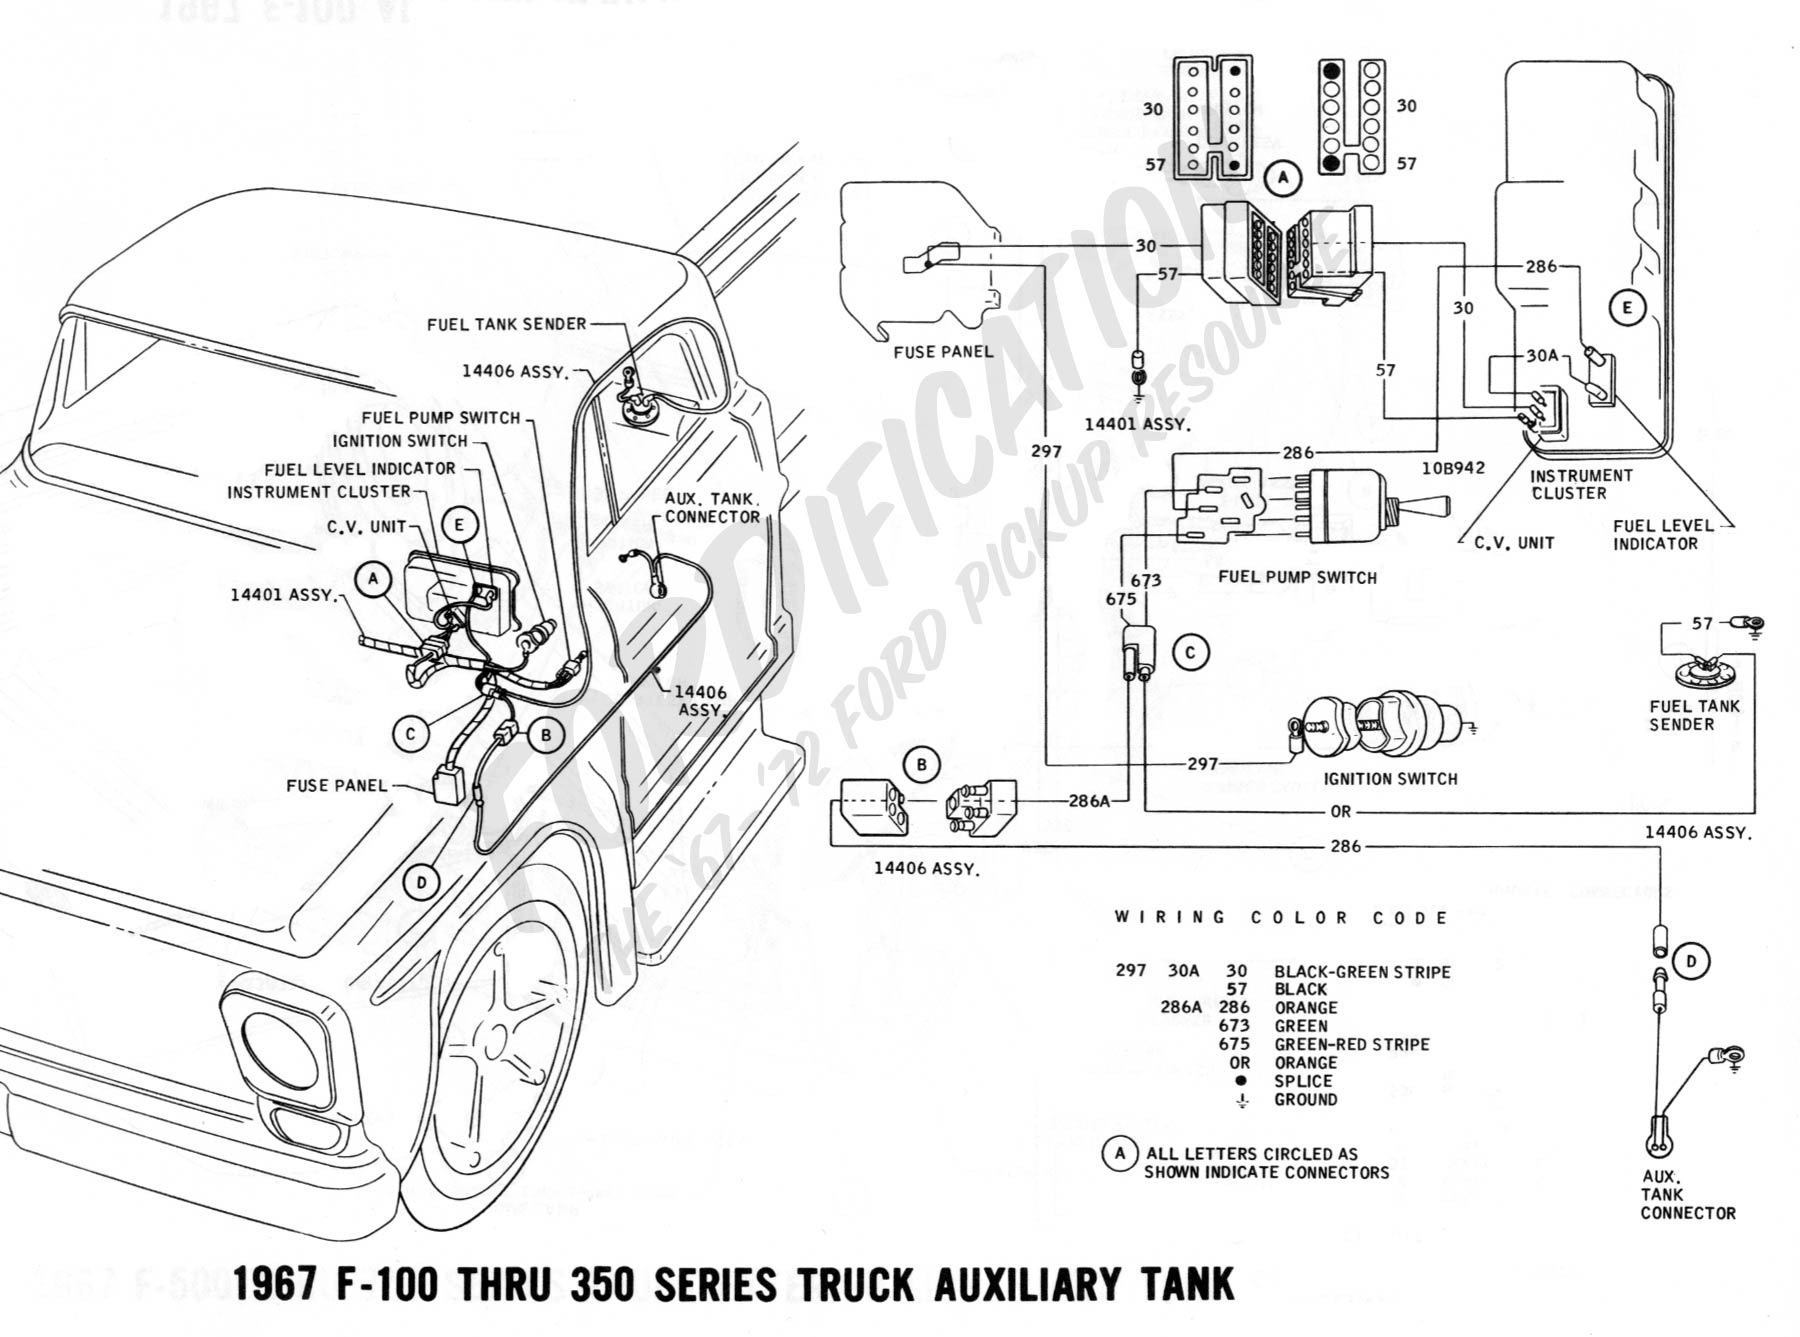 Schematics h on 2005 mustang fuel system diagram